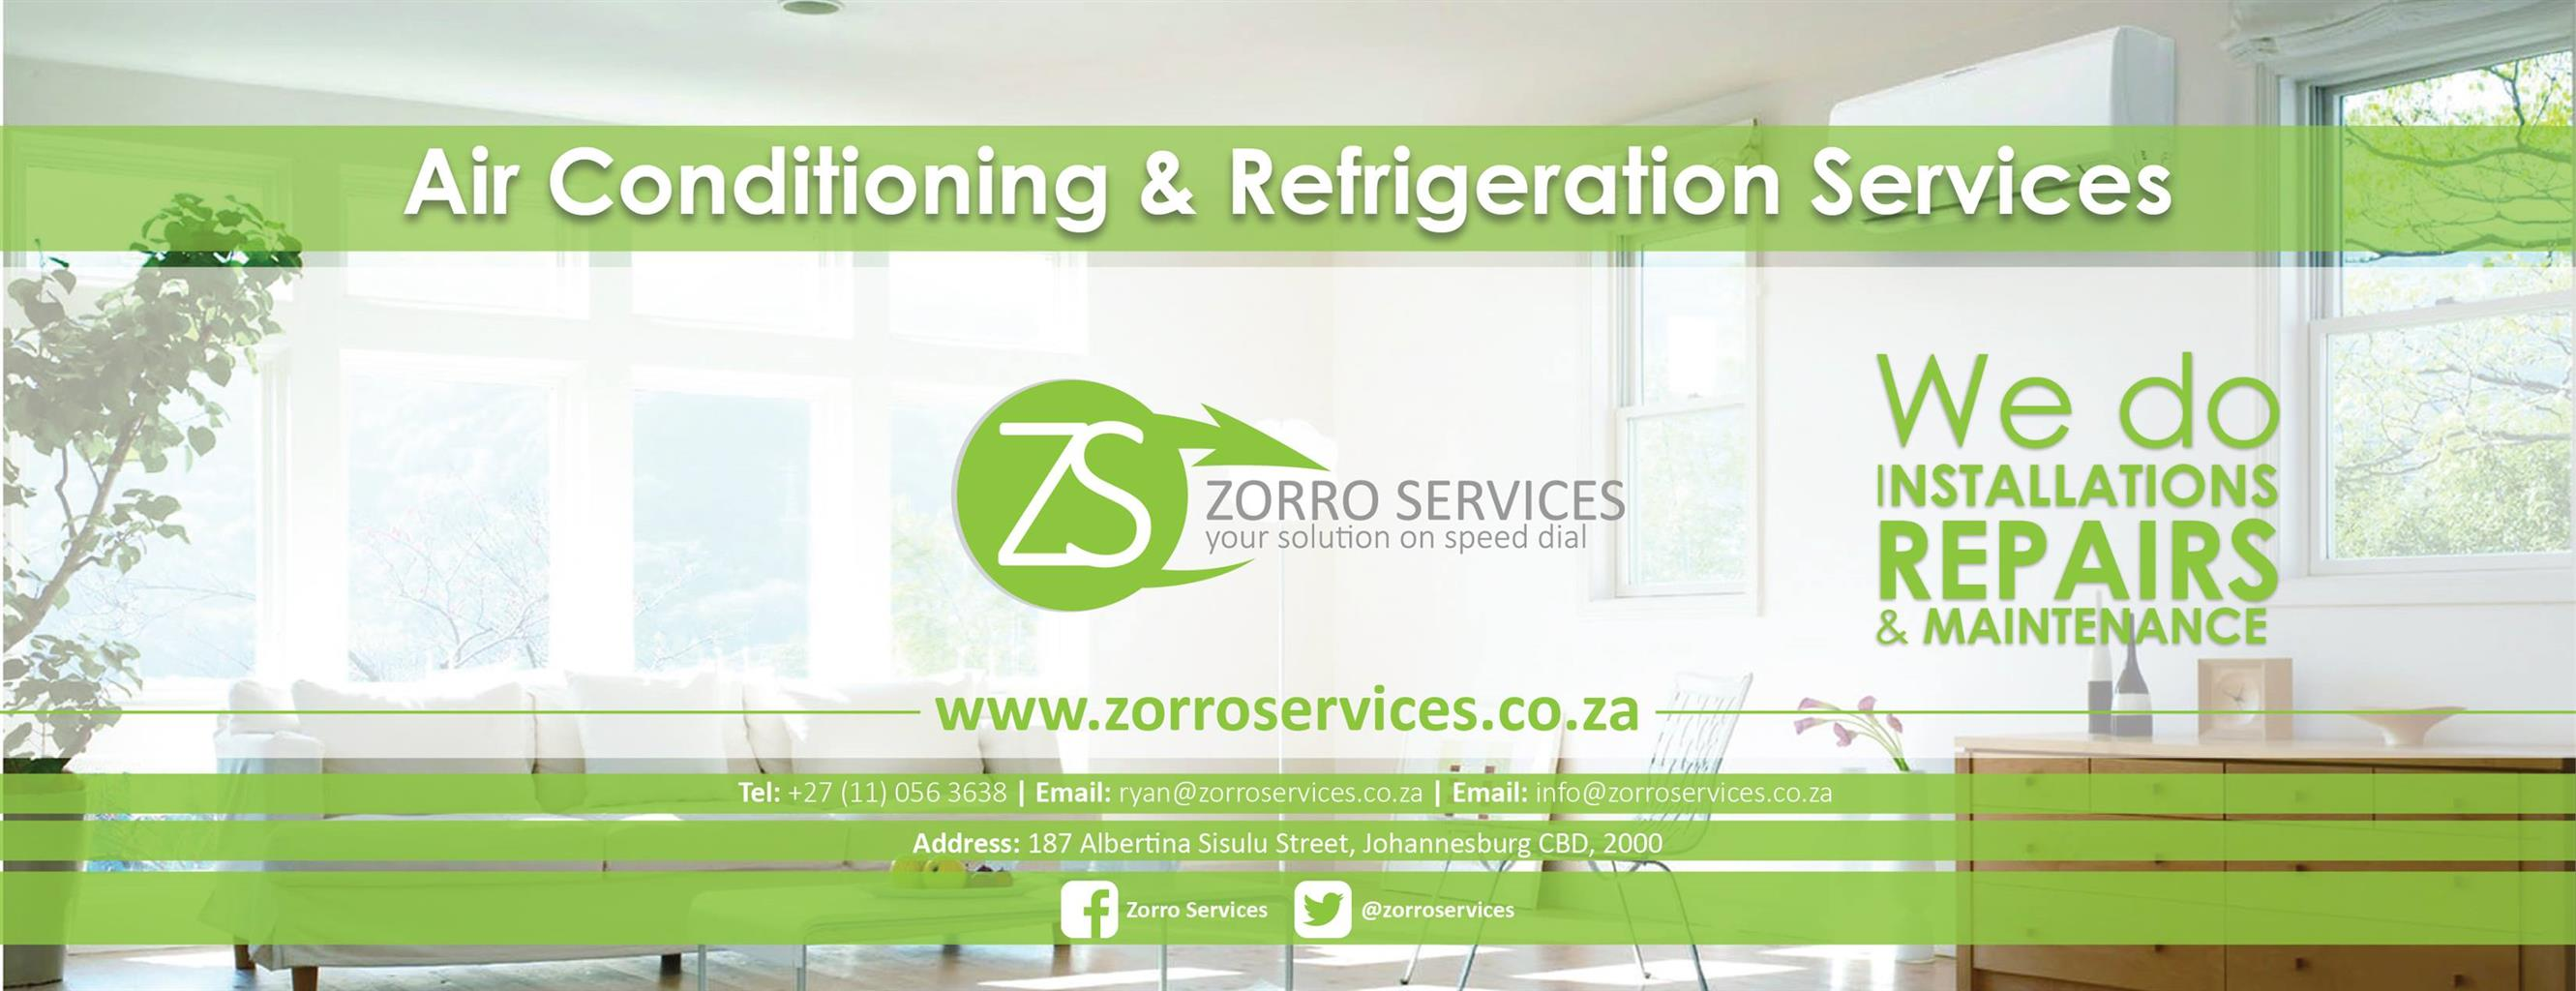 Zorro Services - Air conditioning Services